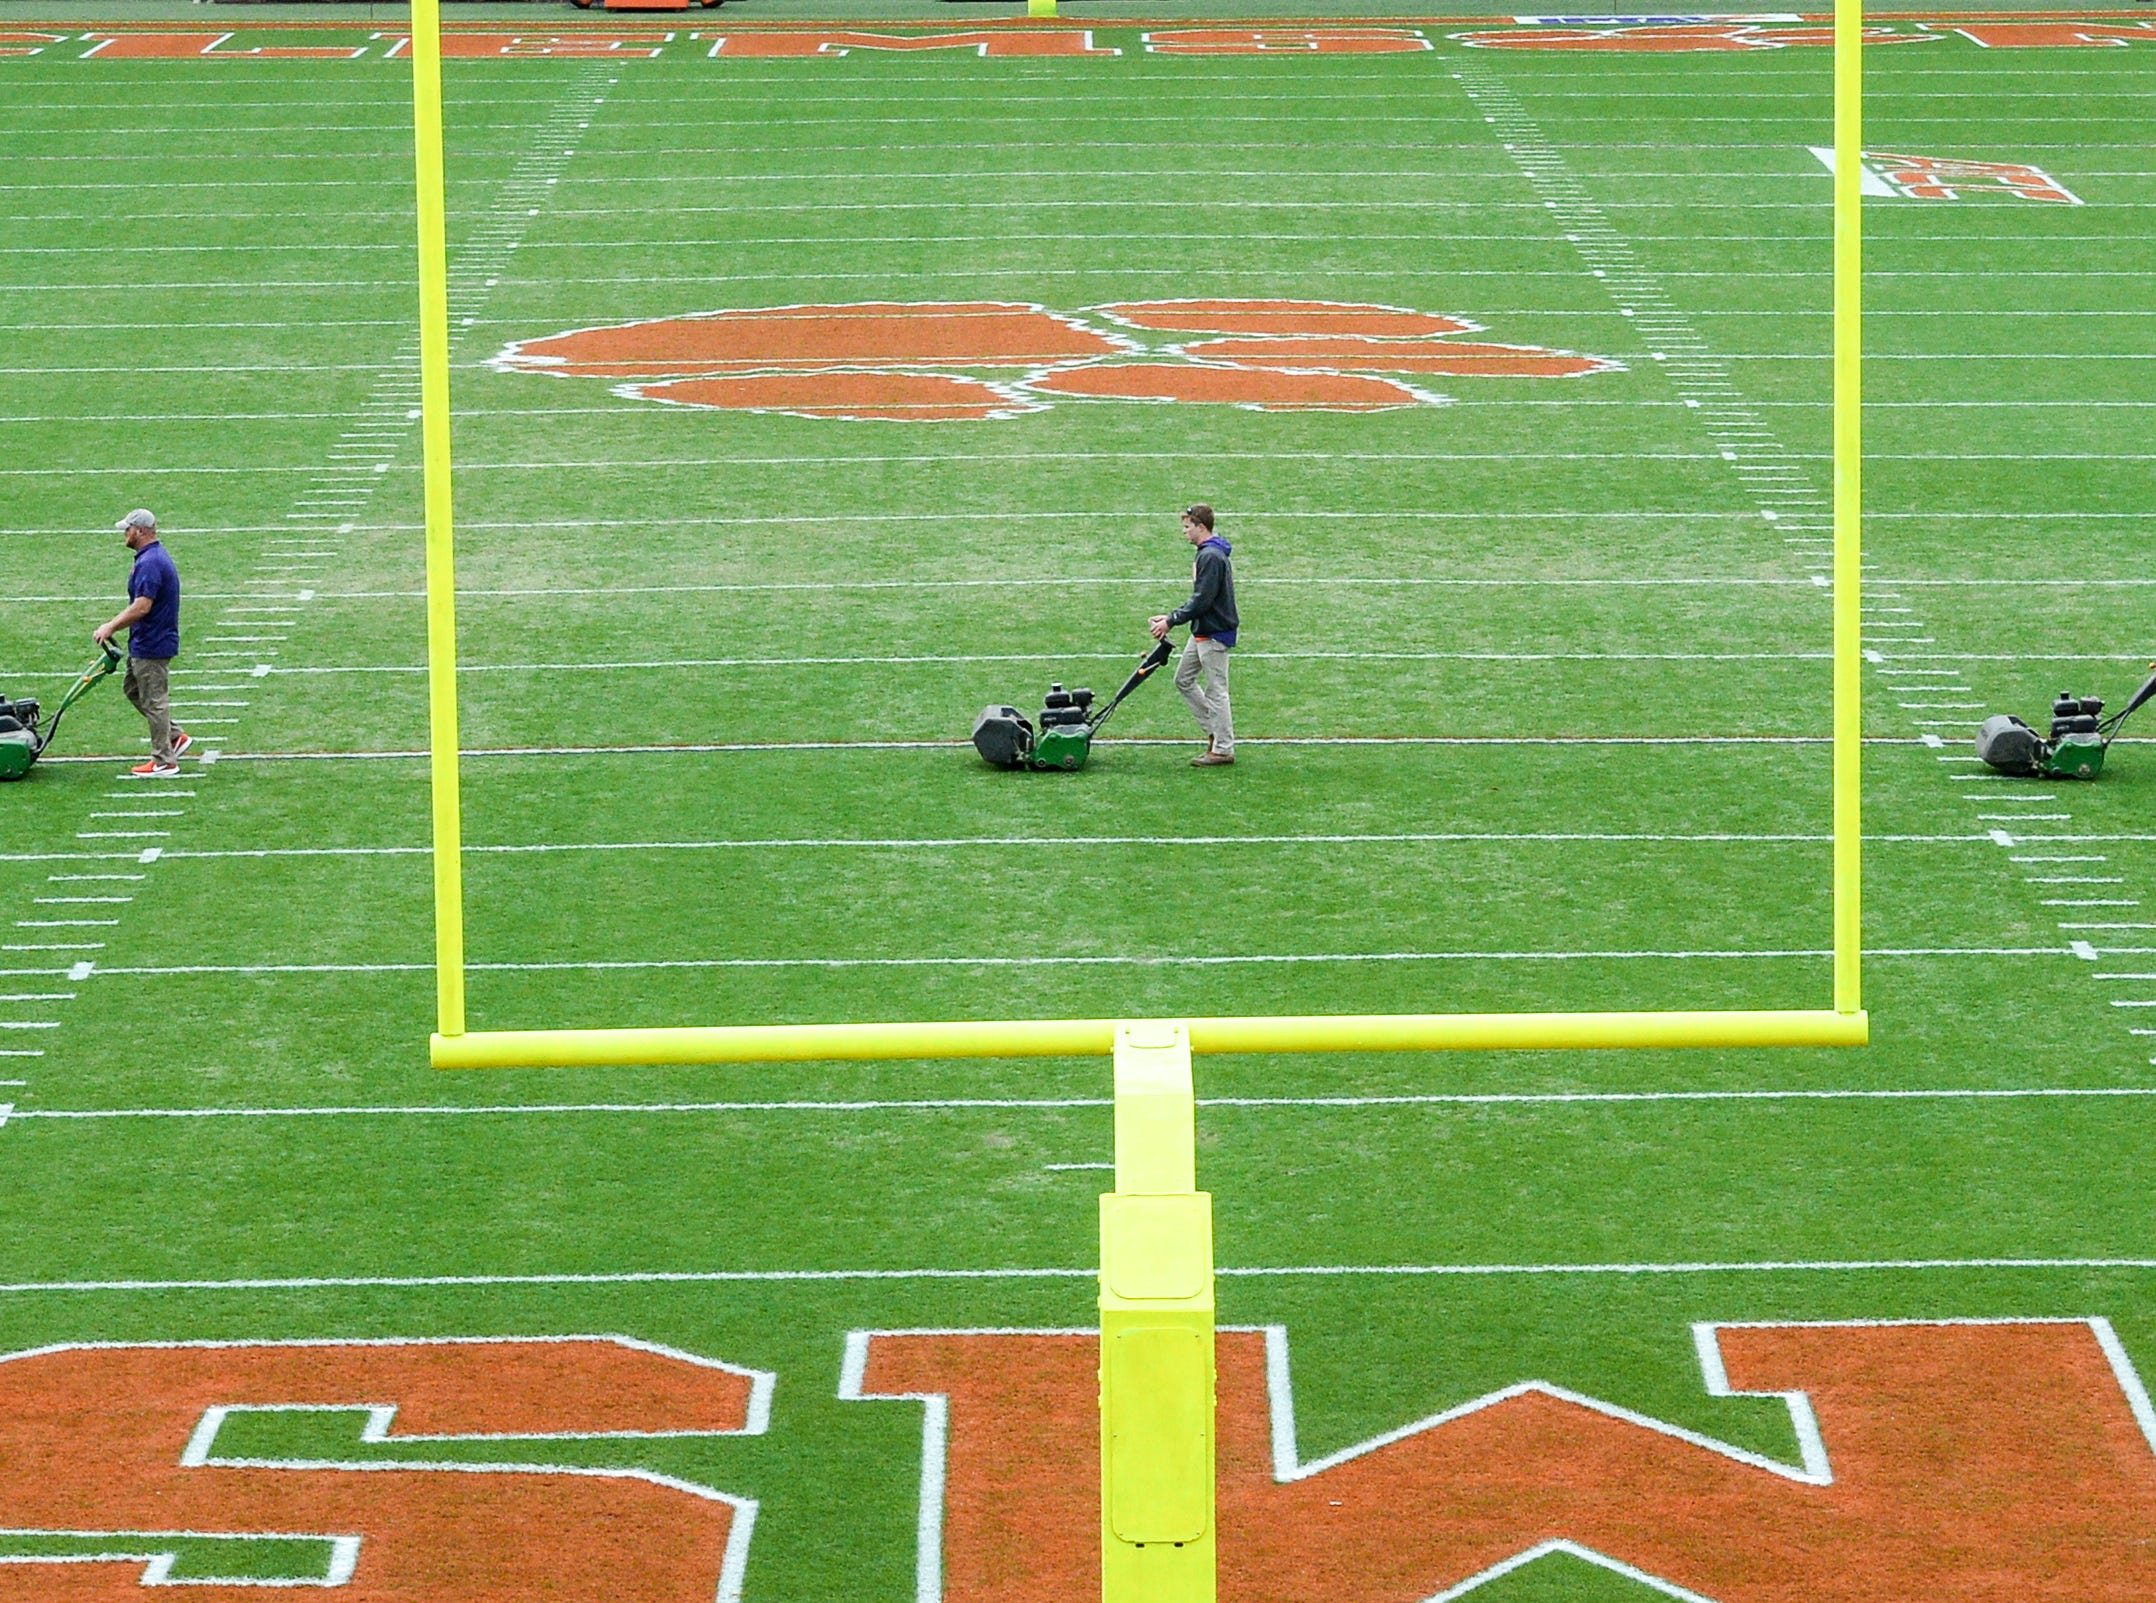 Dan McKinney, left, Clemson University Athletic Grounds, and coworkers Philip Rhodes, middle, and Marshall Wagner run a grass trimming machine over the field seven hours before kickoff in Memorial Stadium, before the South Carolina at Clemson football game in Clemson on Saturday, November 24, 2018.